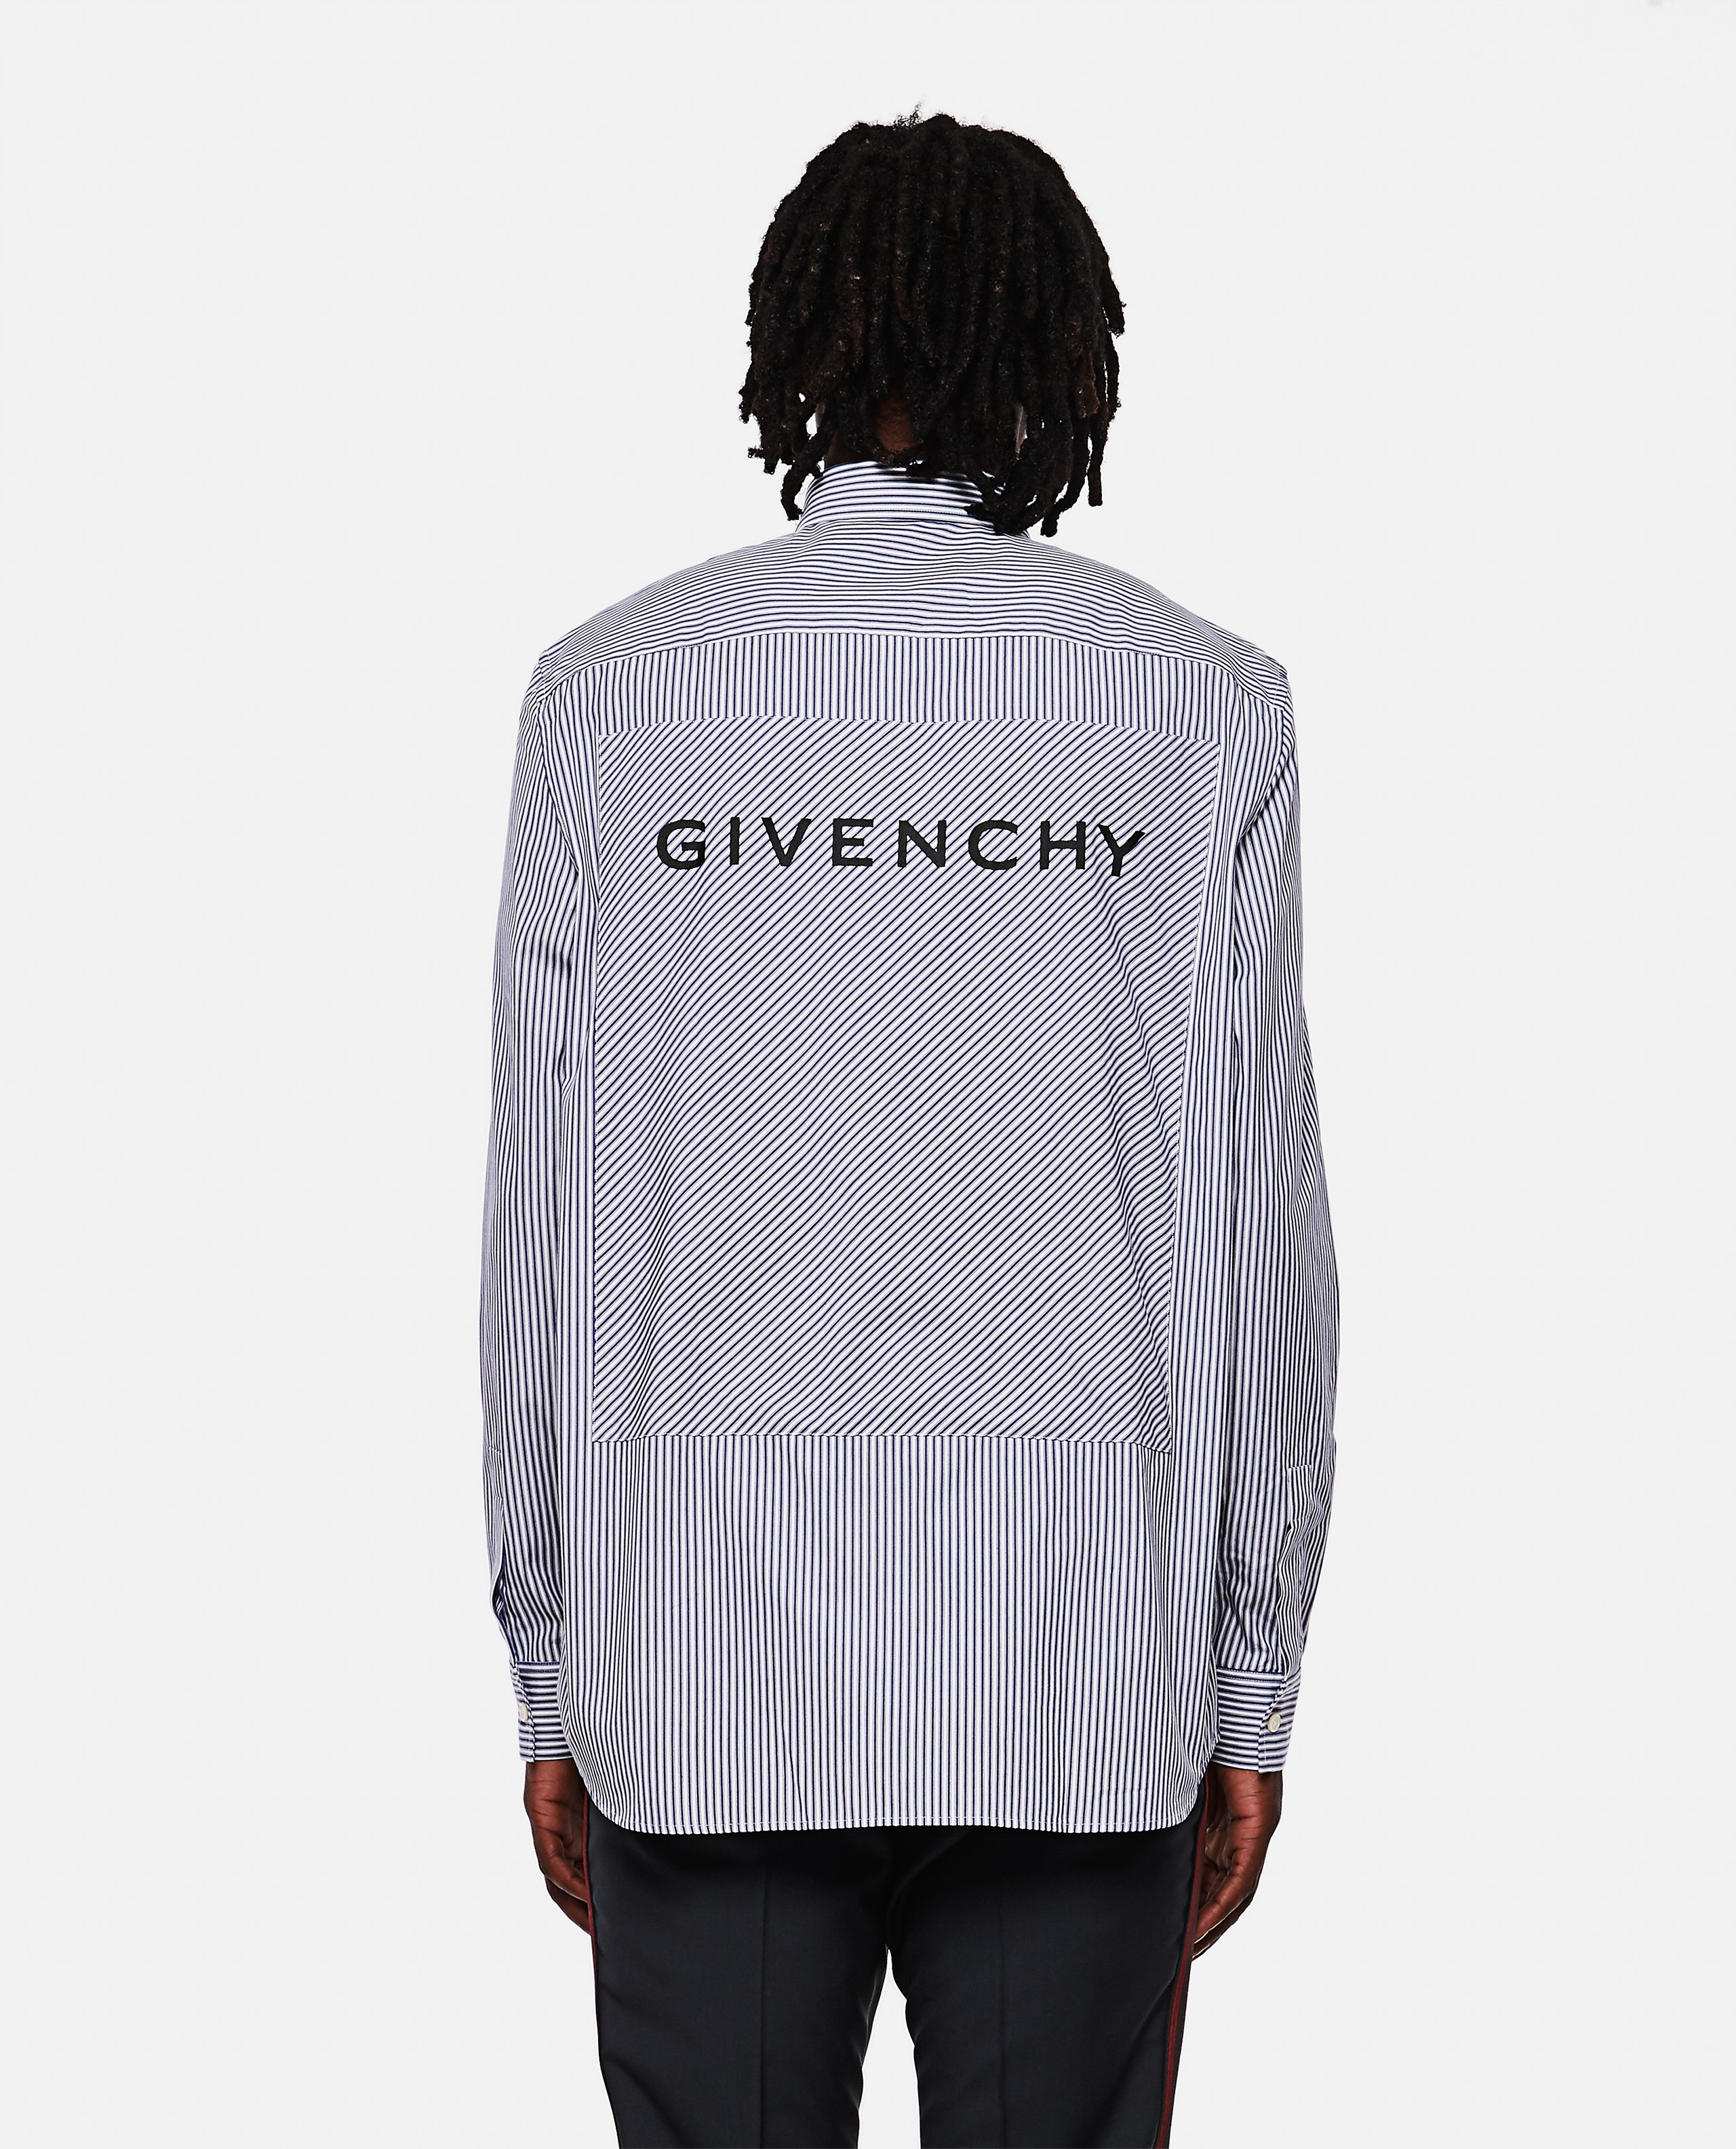 Shirt with print Men Givenchy 000253030037391 3